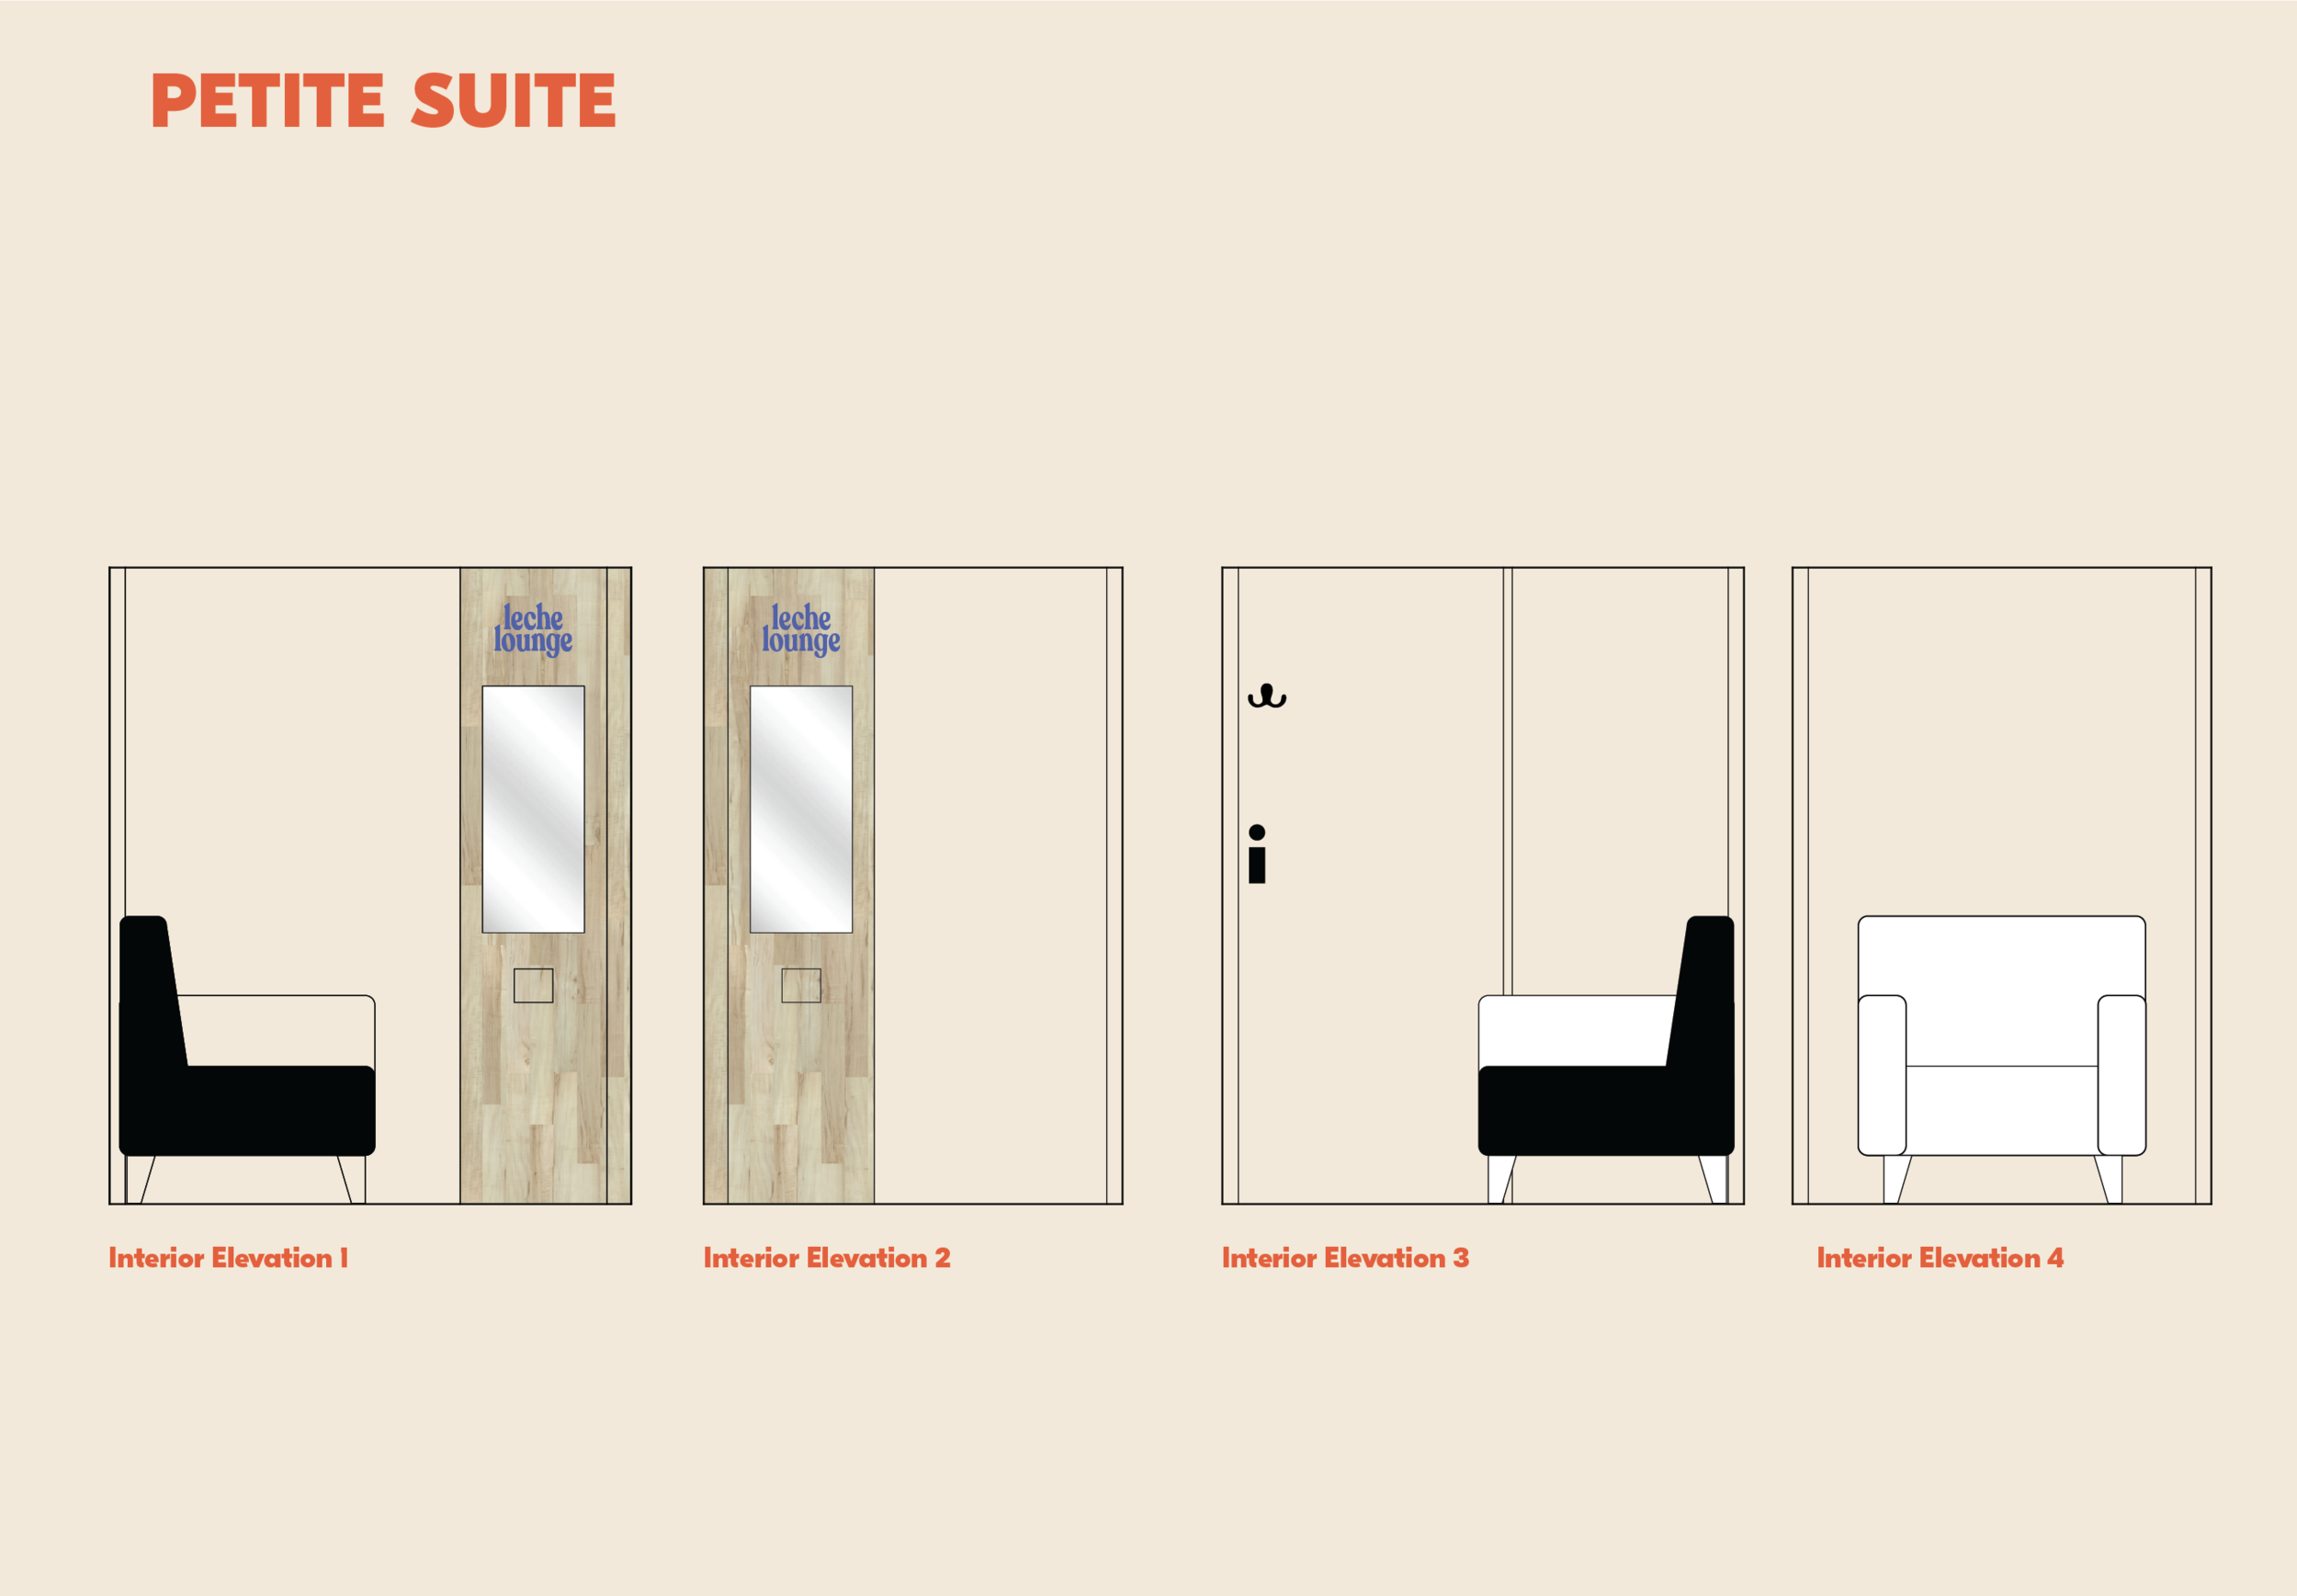 LecheLounge_plans-elevations_Site_2019-02.png